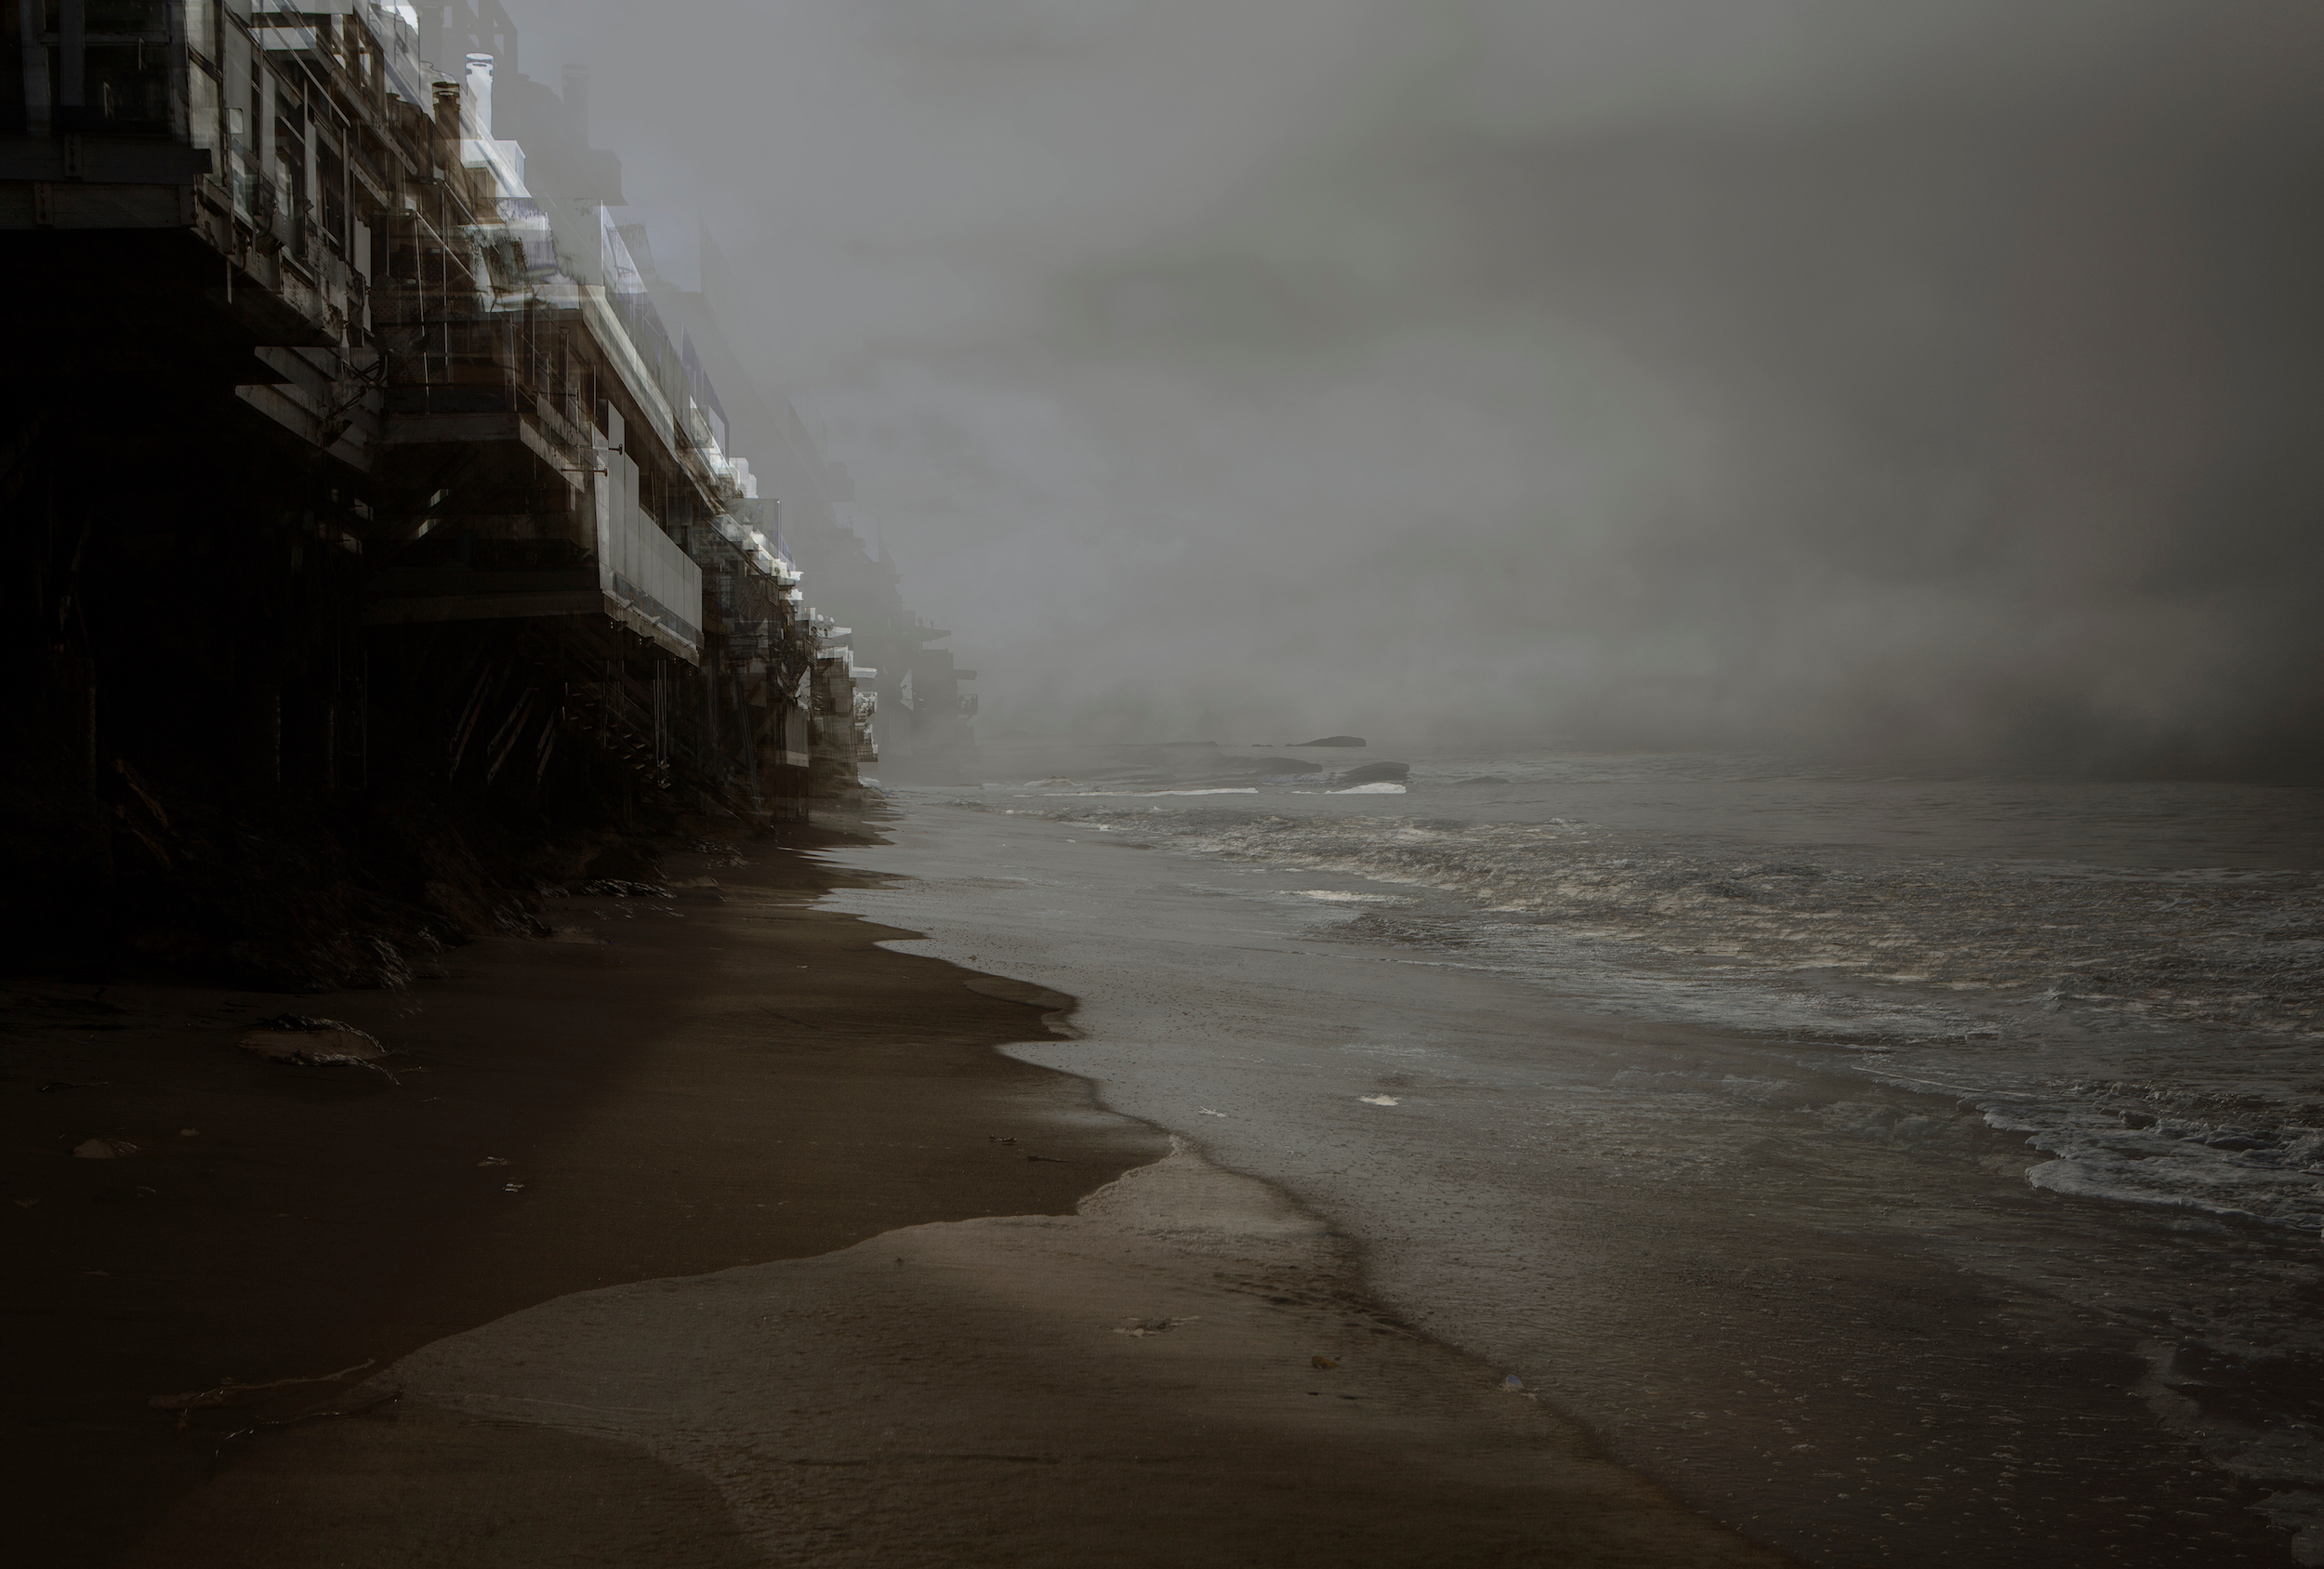 Untitled #7  (Nowhere) , 2012/ archival pigment print, 41 x 60 1/4 inches, edition of 3 plus 2 AP